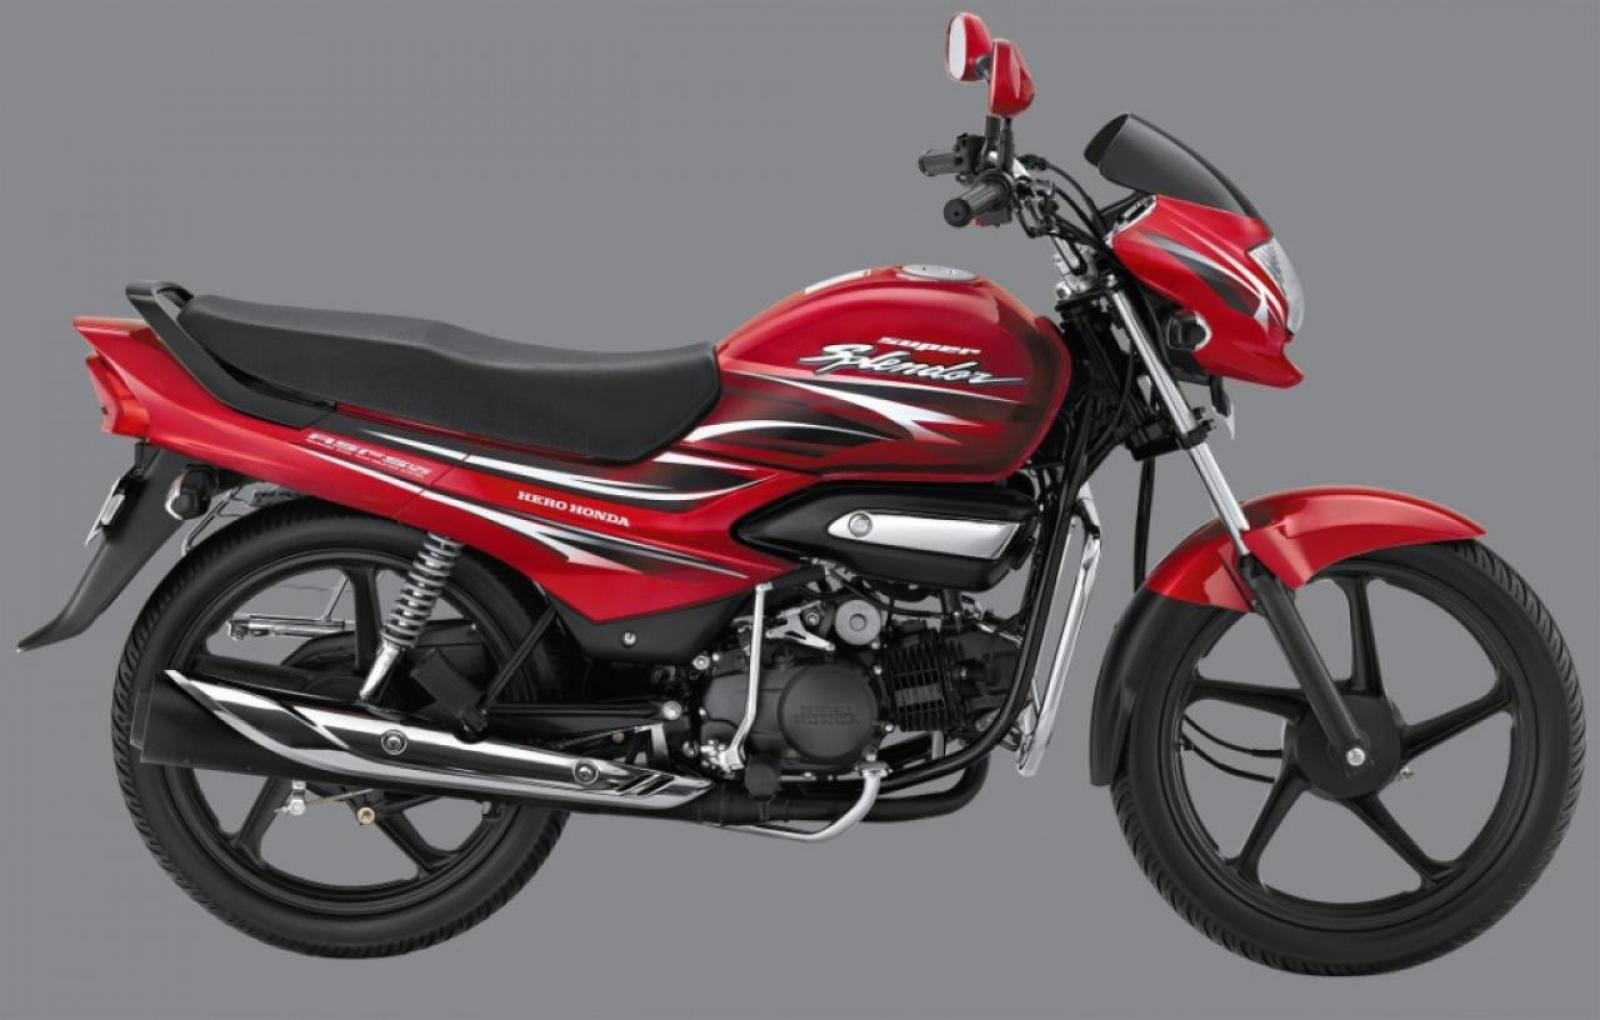 Hero Honda Splendor images #95901